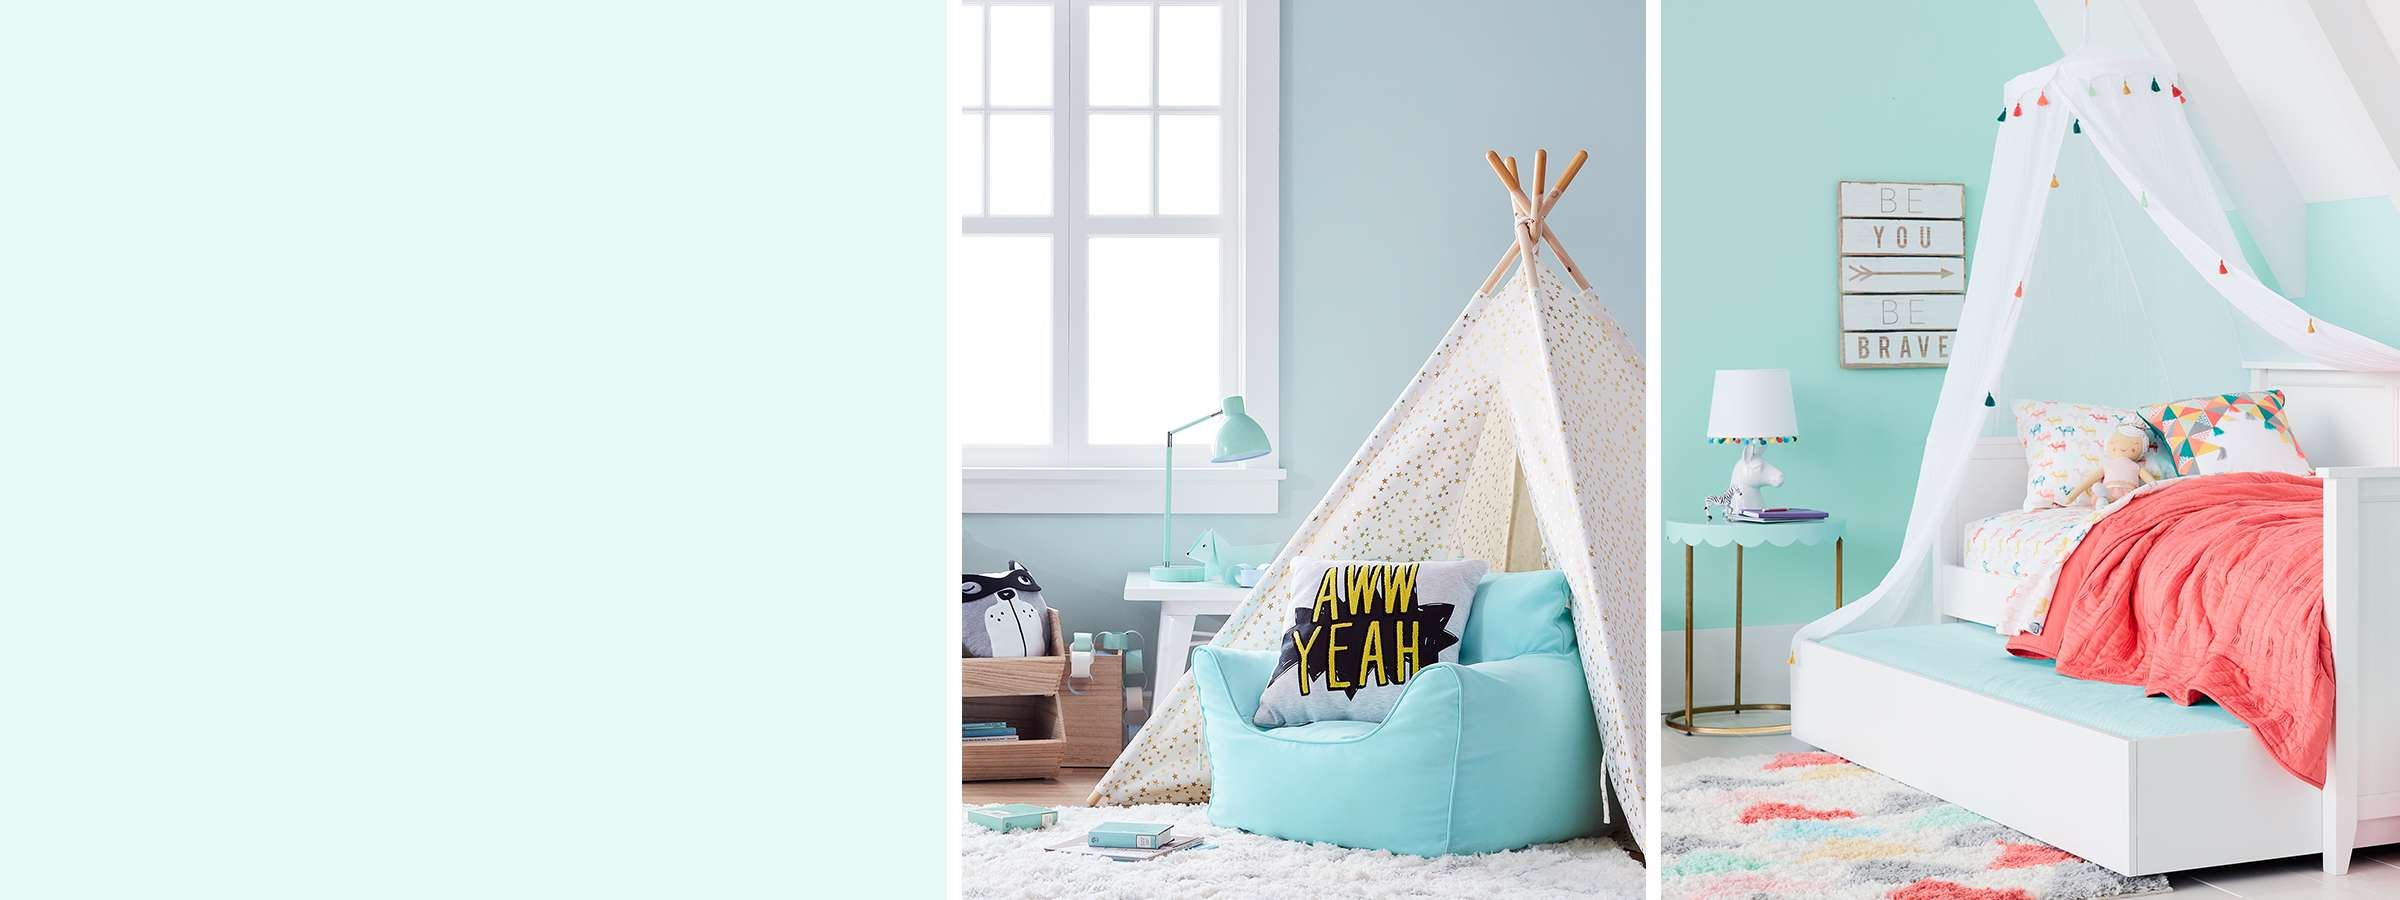 Space Room Decor For Kids